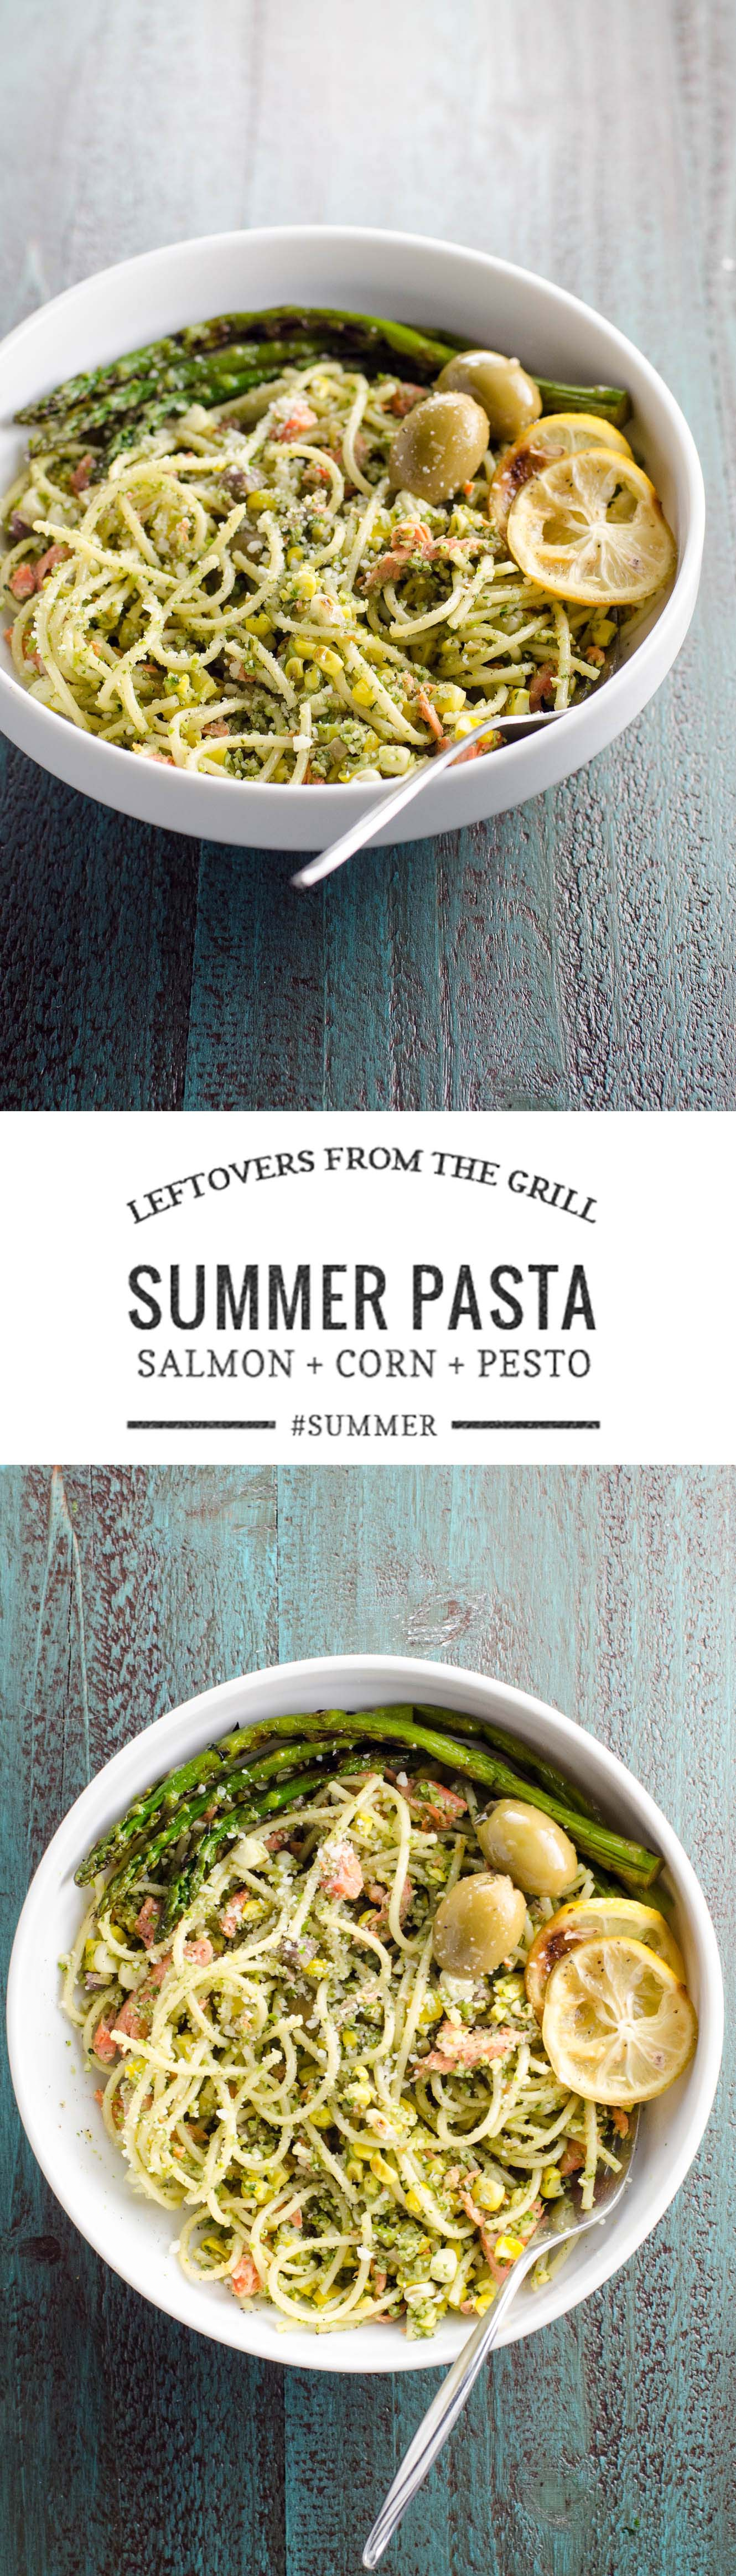 A great summer pasta recipe with grilled salmon, corn and pesto.